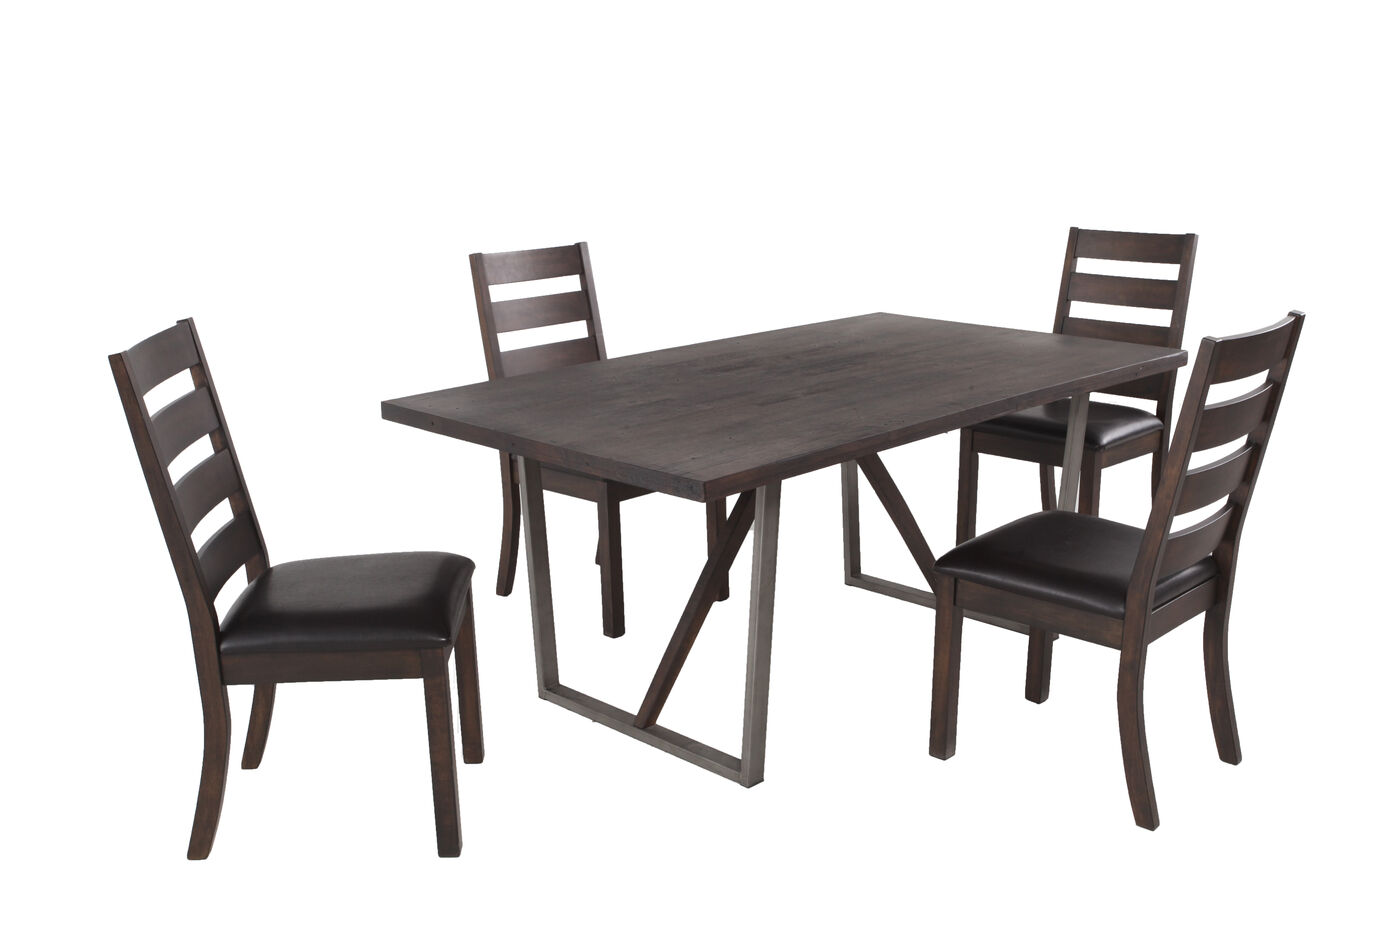 Mathis brothers dining room tables and chairs mathis for Dining table only